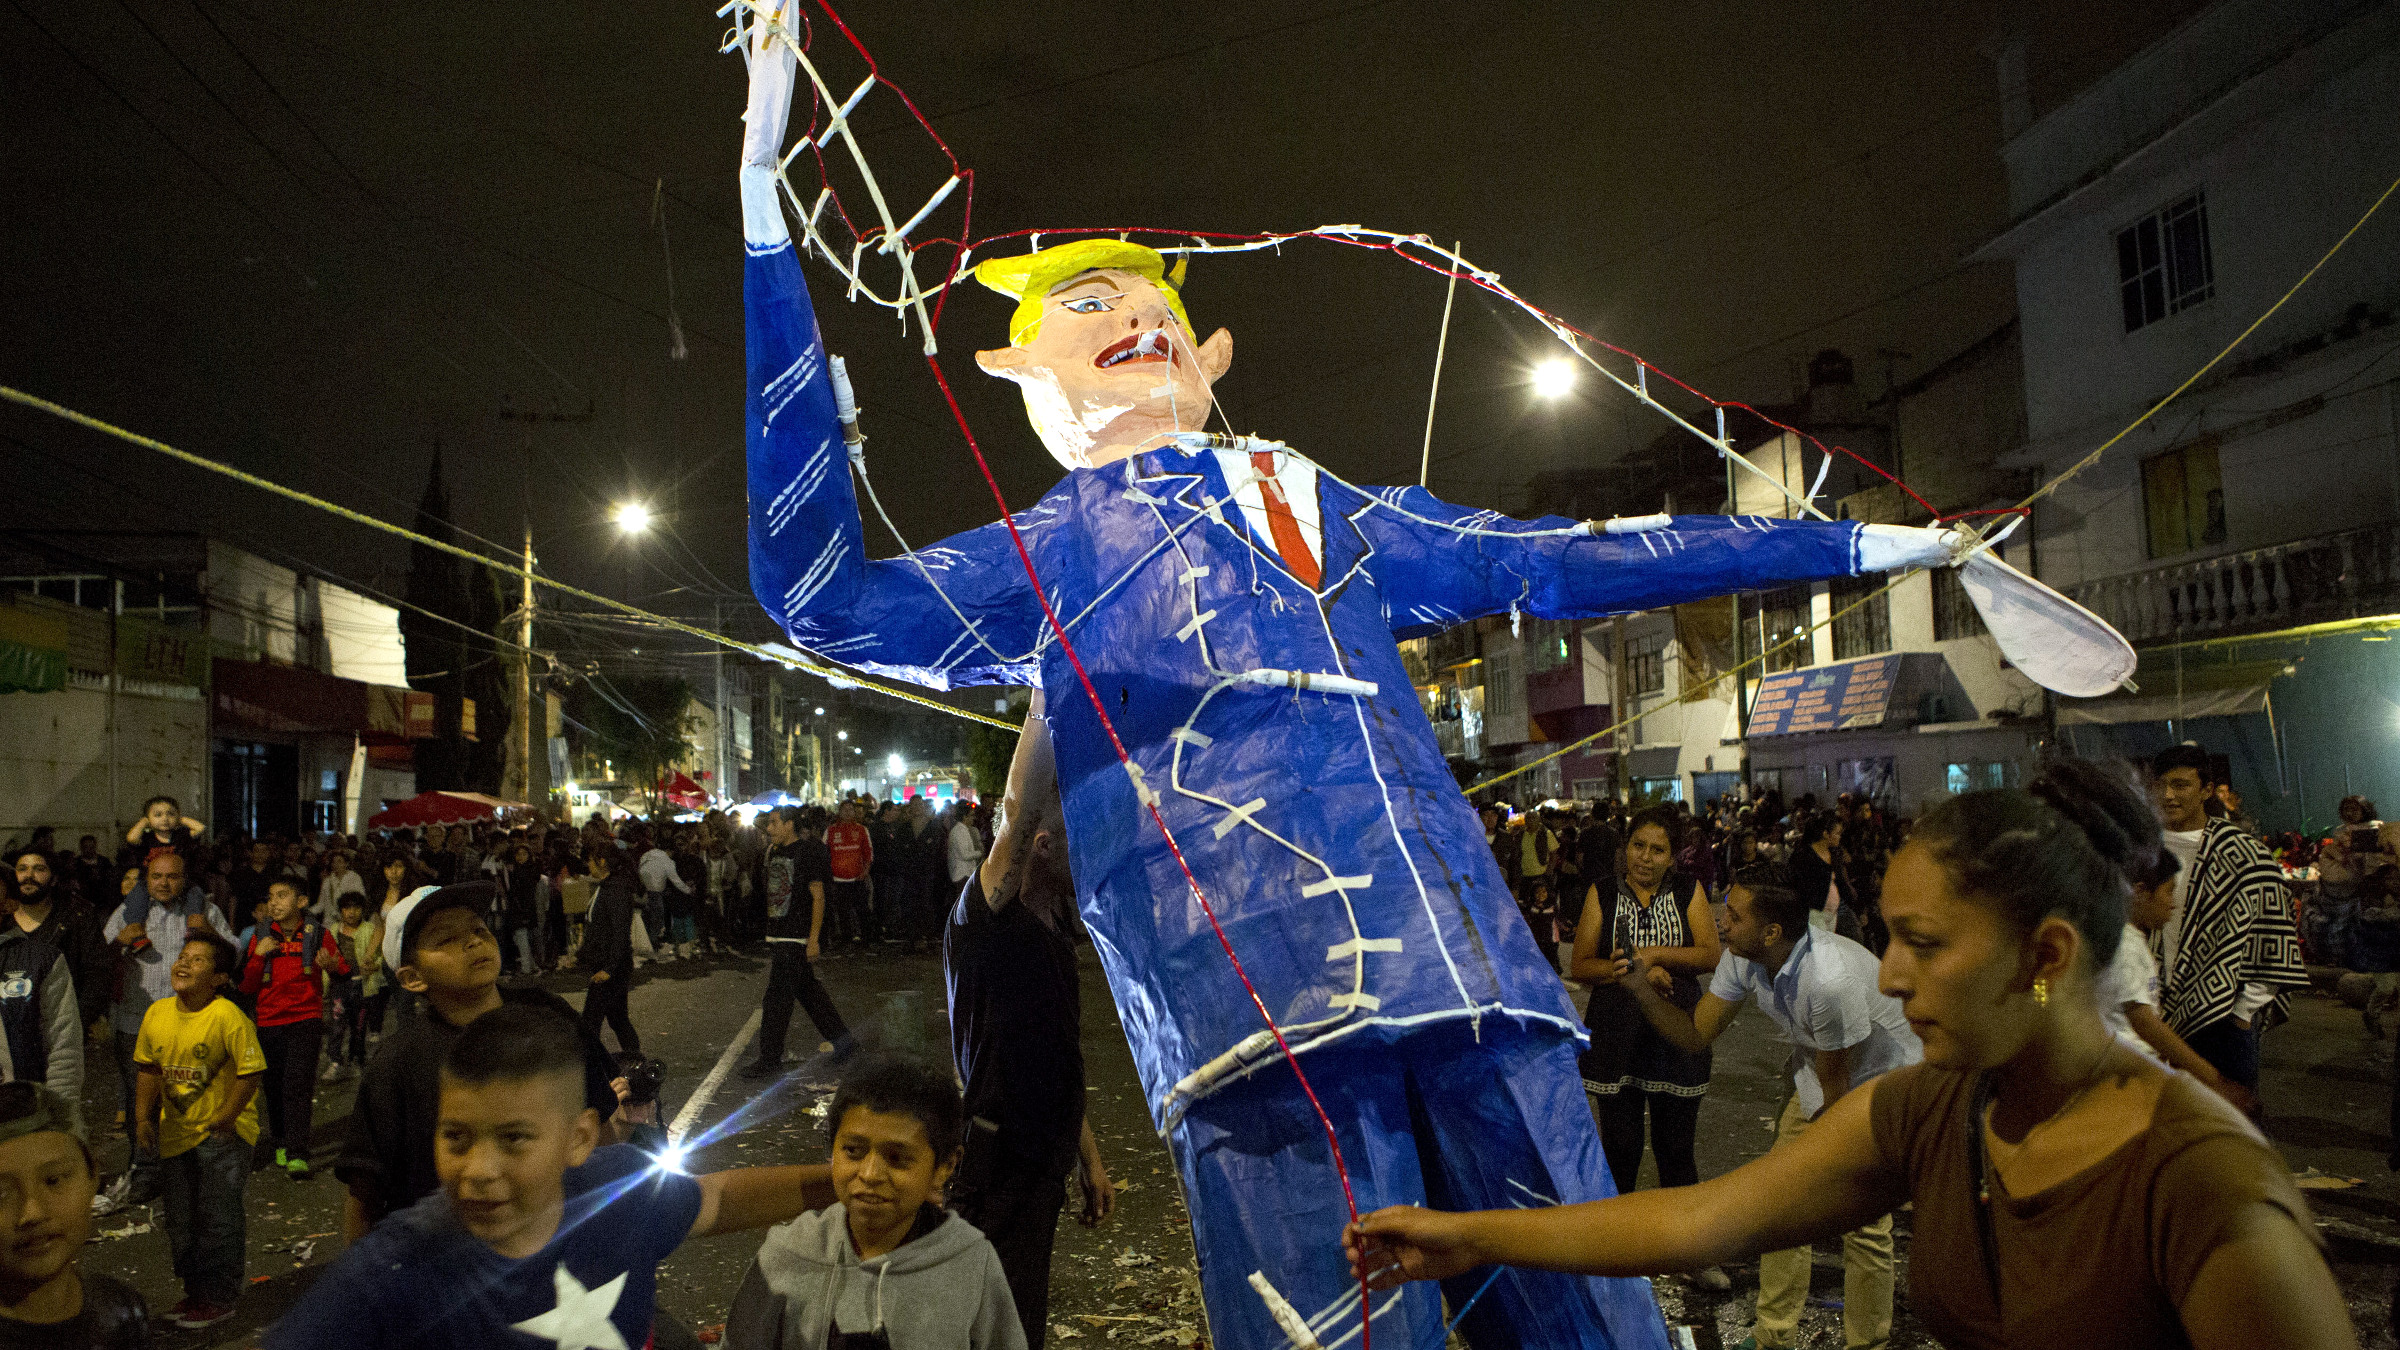 "People gather around as a woman prepares to light a figure of U.S. President Donald Trump rigged with fireworks, during a neighborhood celebration of ""the burning of Judas,"" in central Mexico City, Saturday, April 15, 2017. The ancient Holy Week tradition, in which the sins and evils of the previous year are ritually cleansed, features figures of devils, politicians, and cartoon characters. This year Trump was a repeated motif, in one representation with a brick wall for a head, in another as a jack-in-the-box, and in a third as a severed head held aloft by a devil"